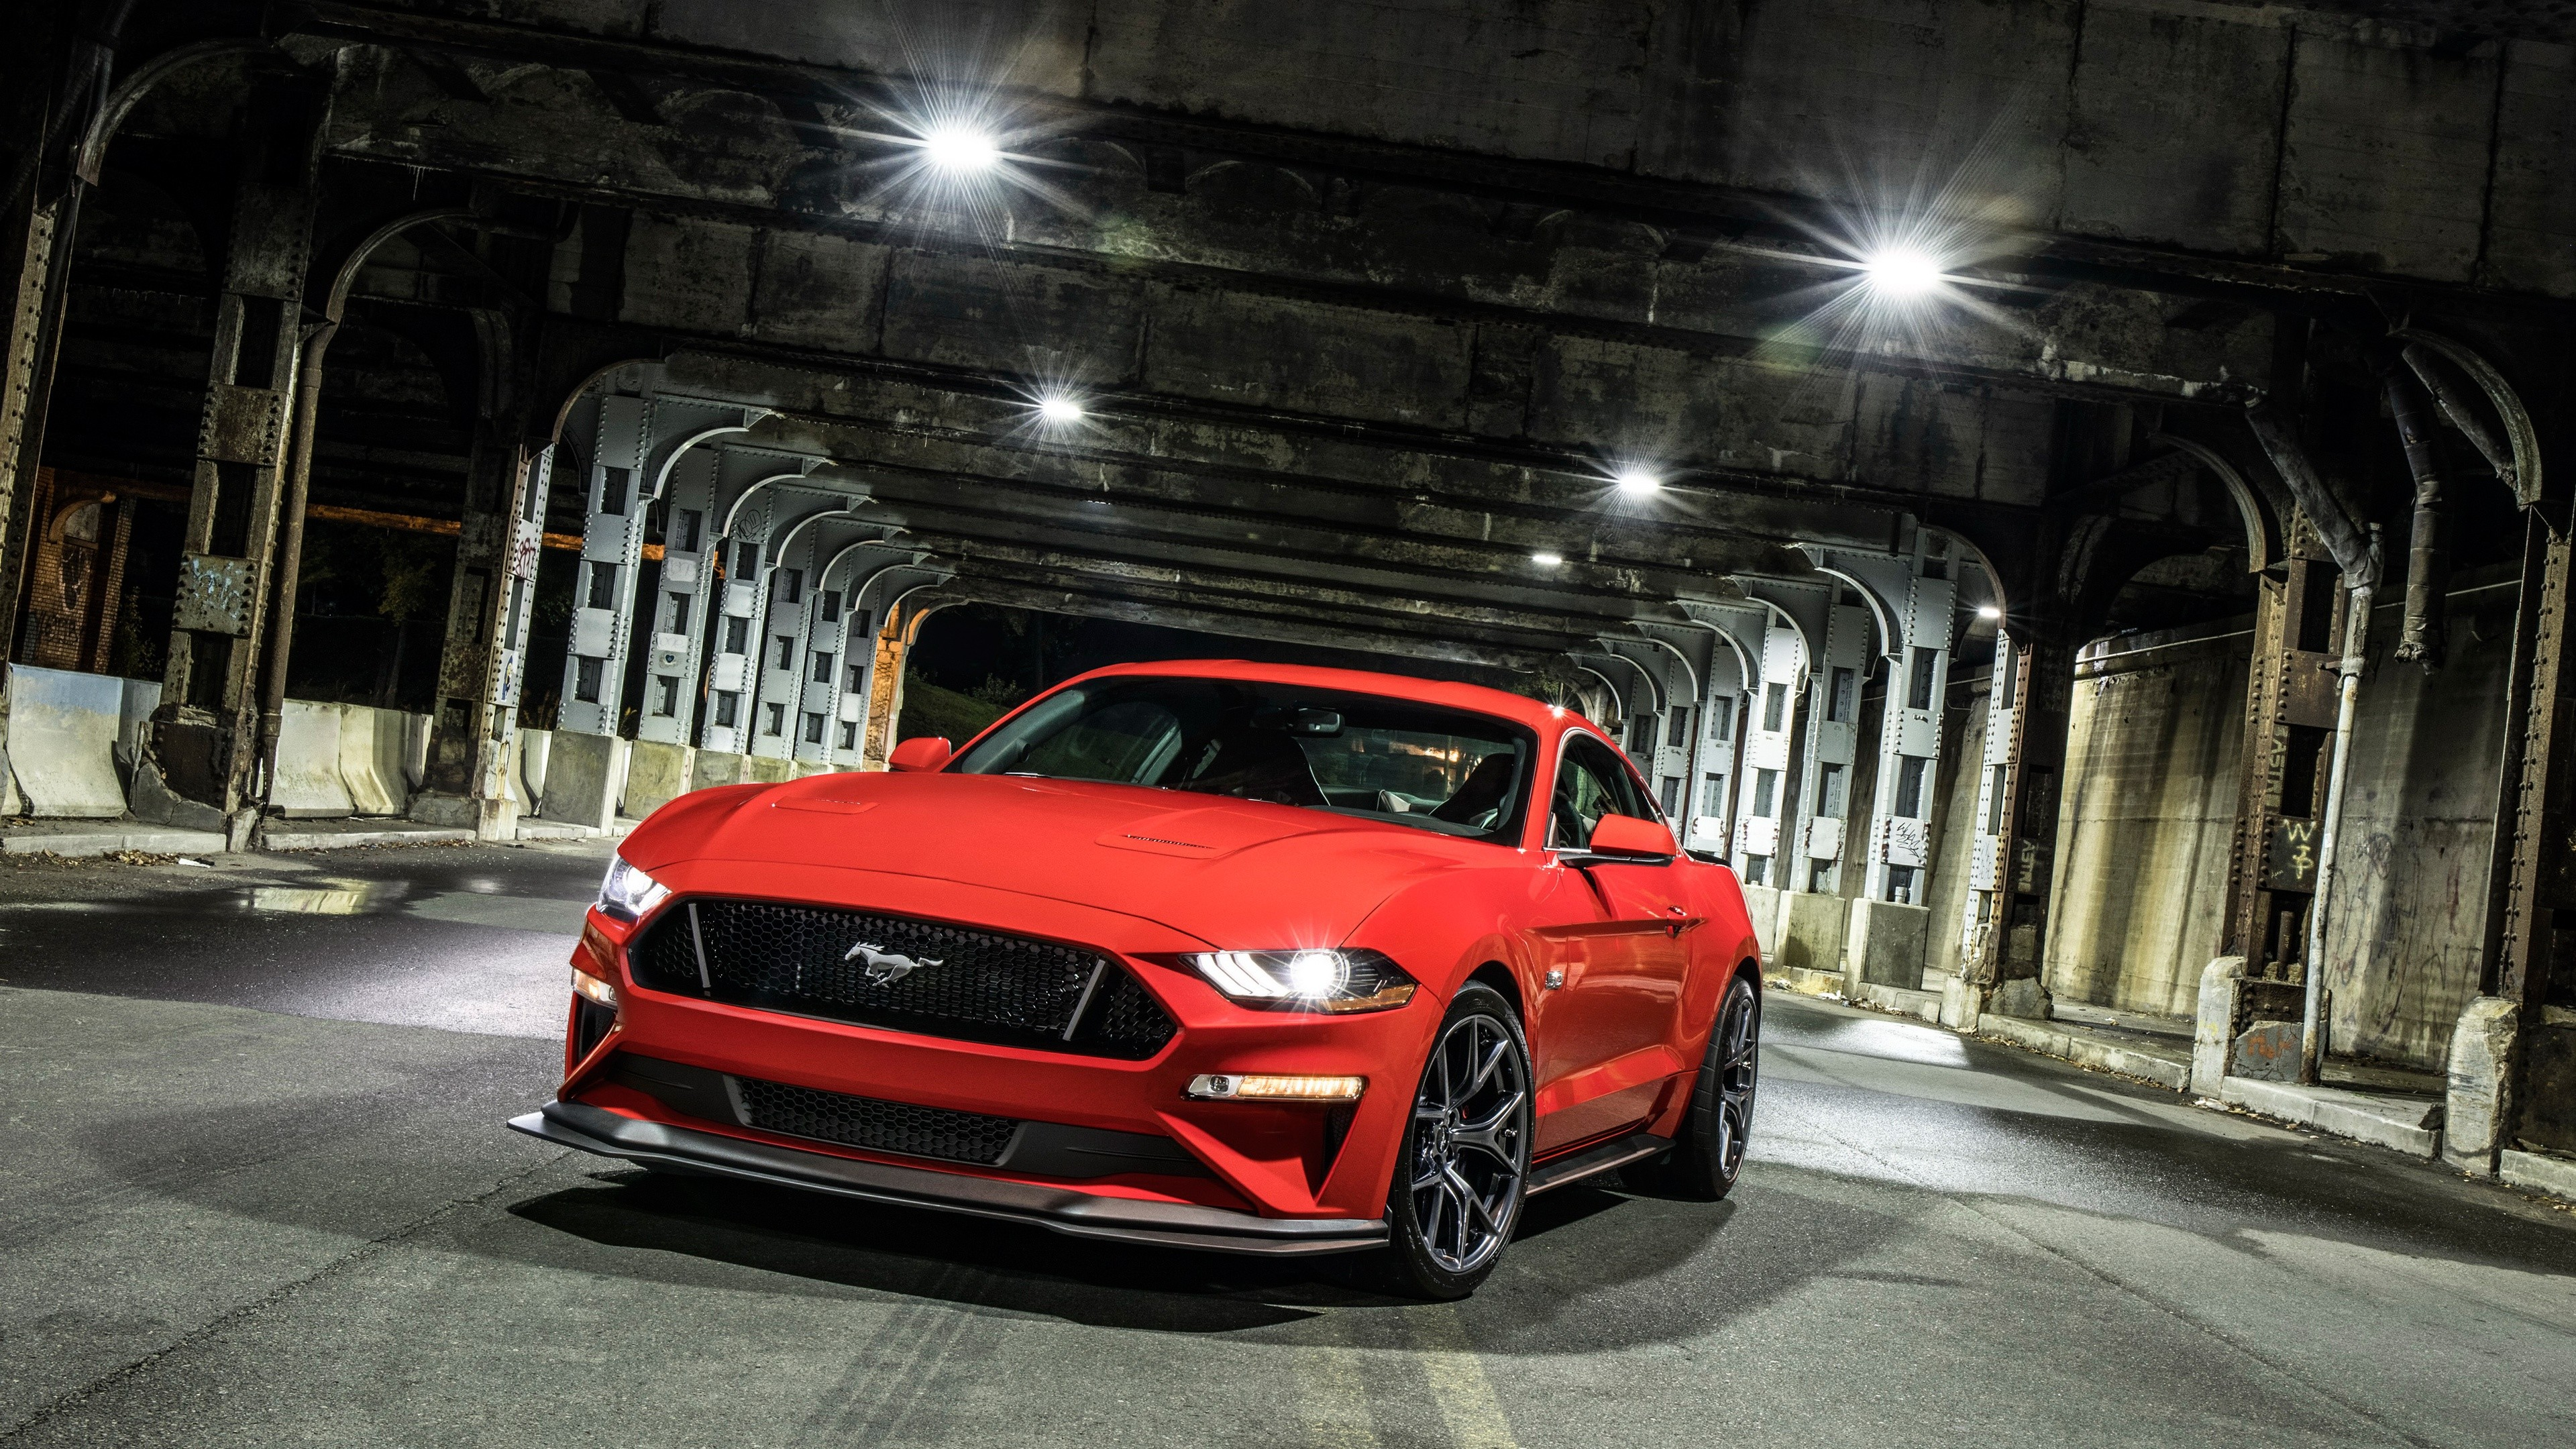 Res: 3840x2160, Fahrzeuge - Ford Mustang GT Muscle Car Red Car Autos Fahrzeug Ford Mustang  Ford Wallpaper